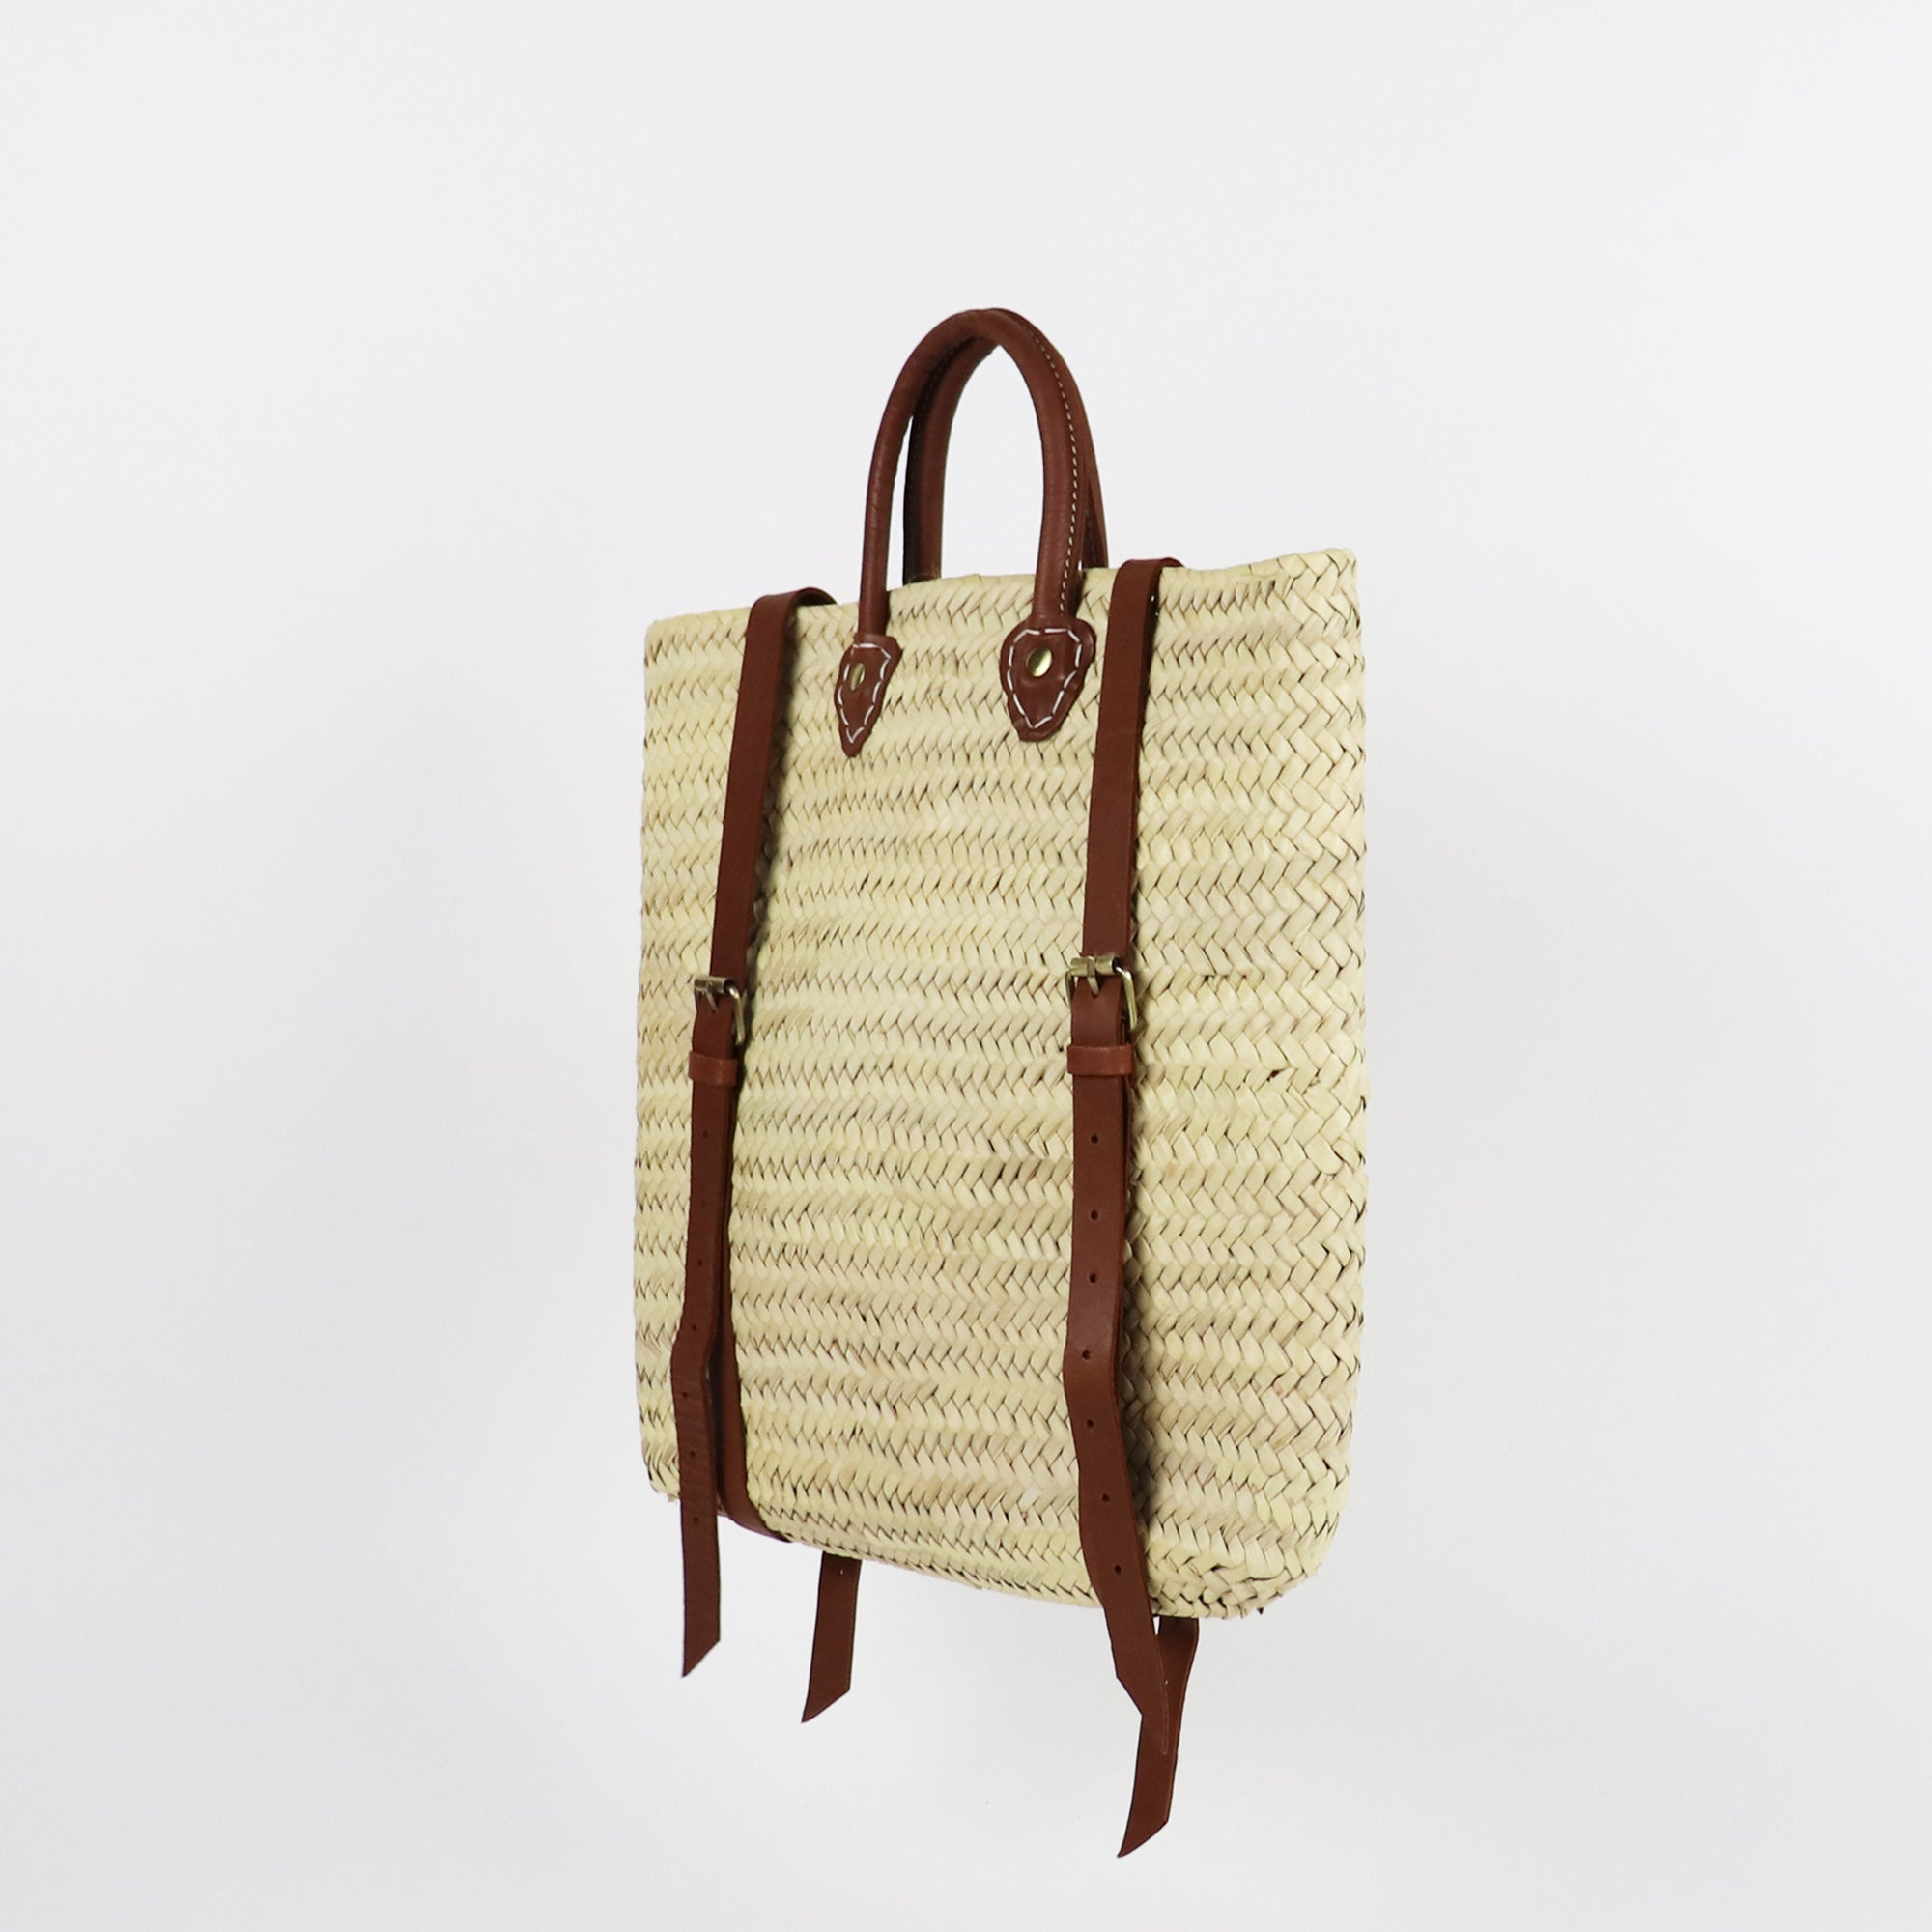 PANAMA Backpack - TAN